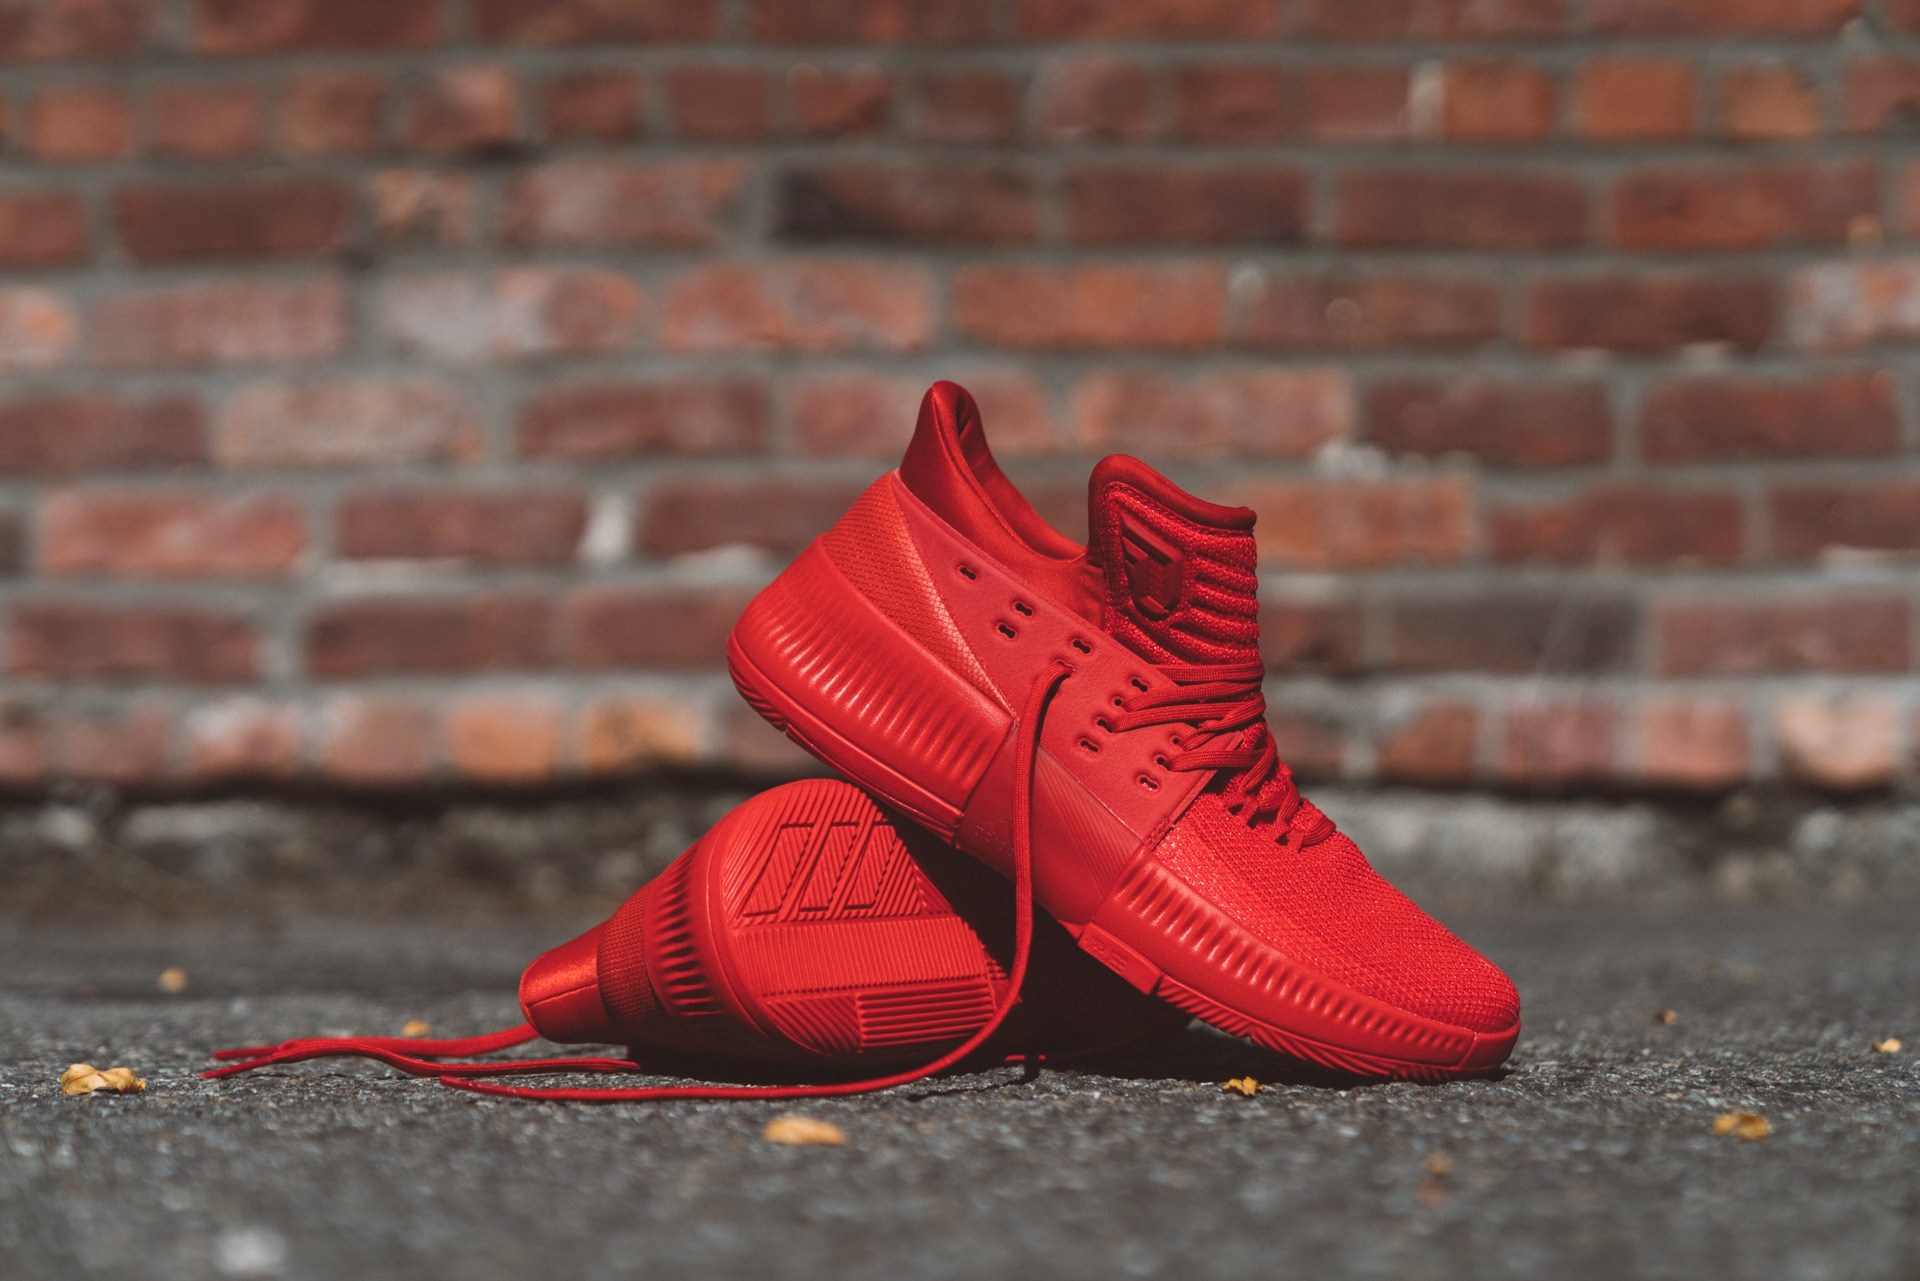 822cf111e276 Adidas releases the first three colorways of the third iteration of Damian  Lillard s signature sneaker